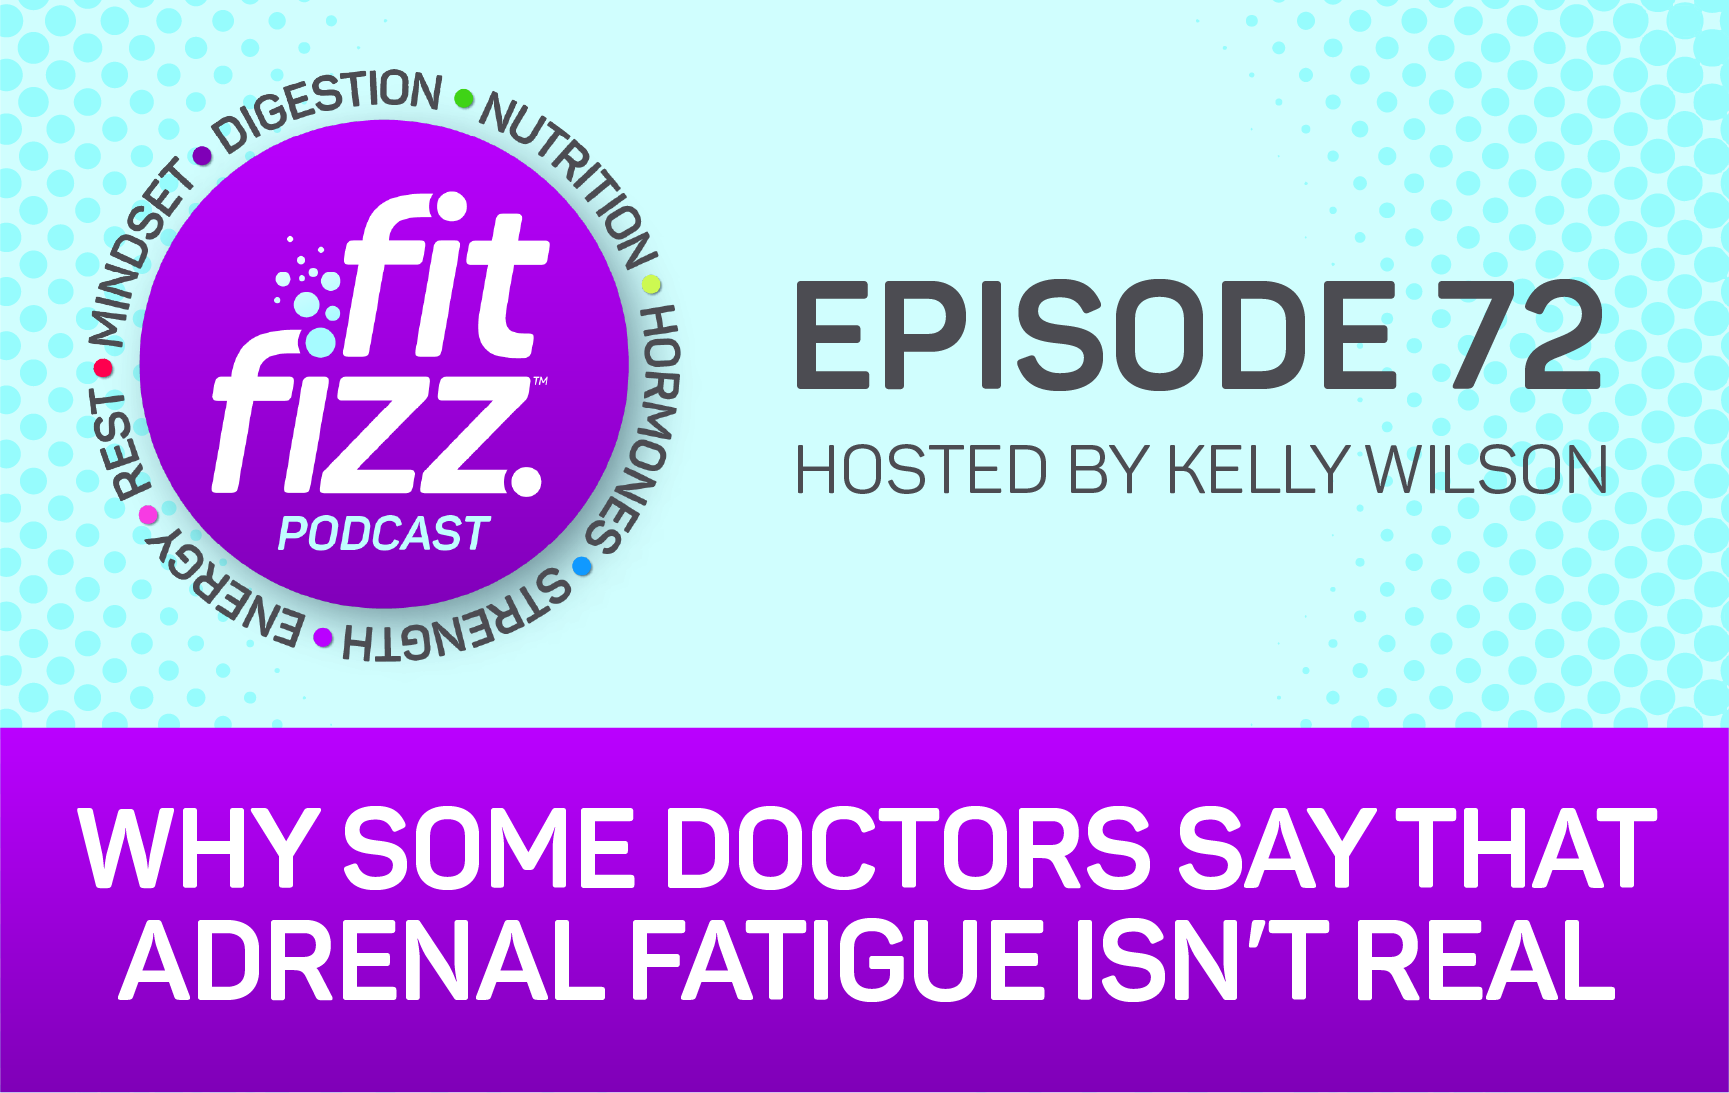 Ep. 72: Why Some Doctors Say That Adrenal Fatigue Isn't Real